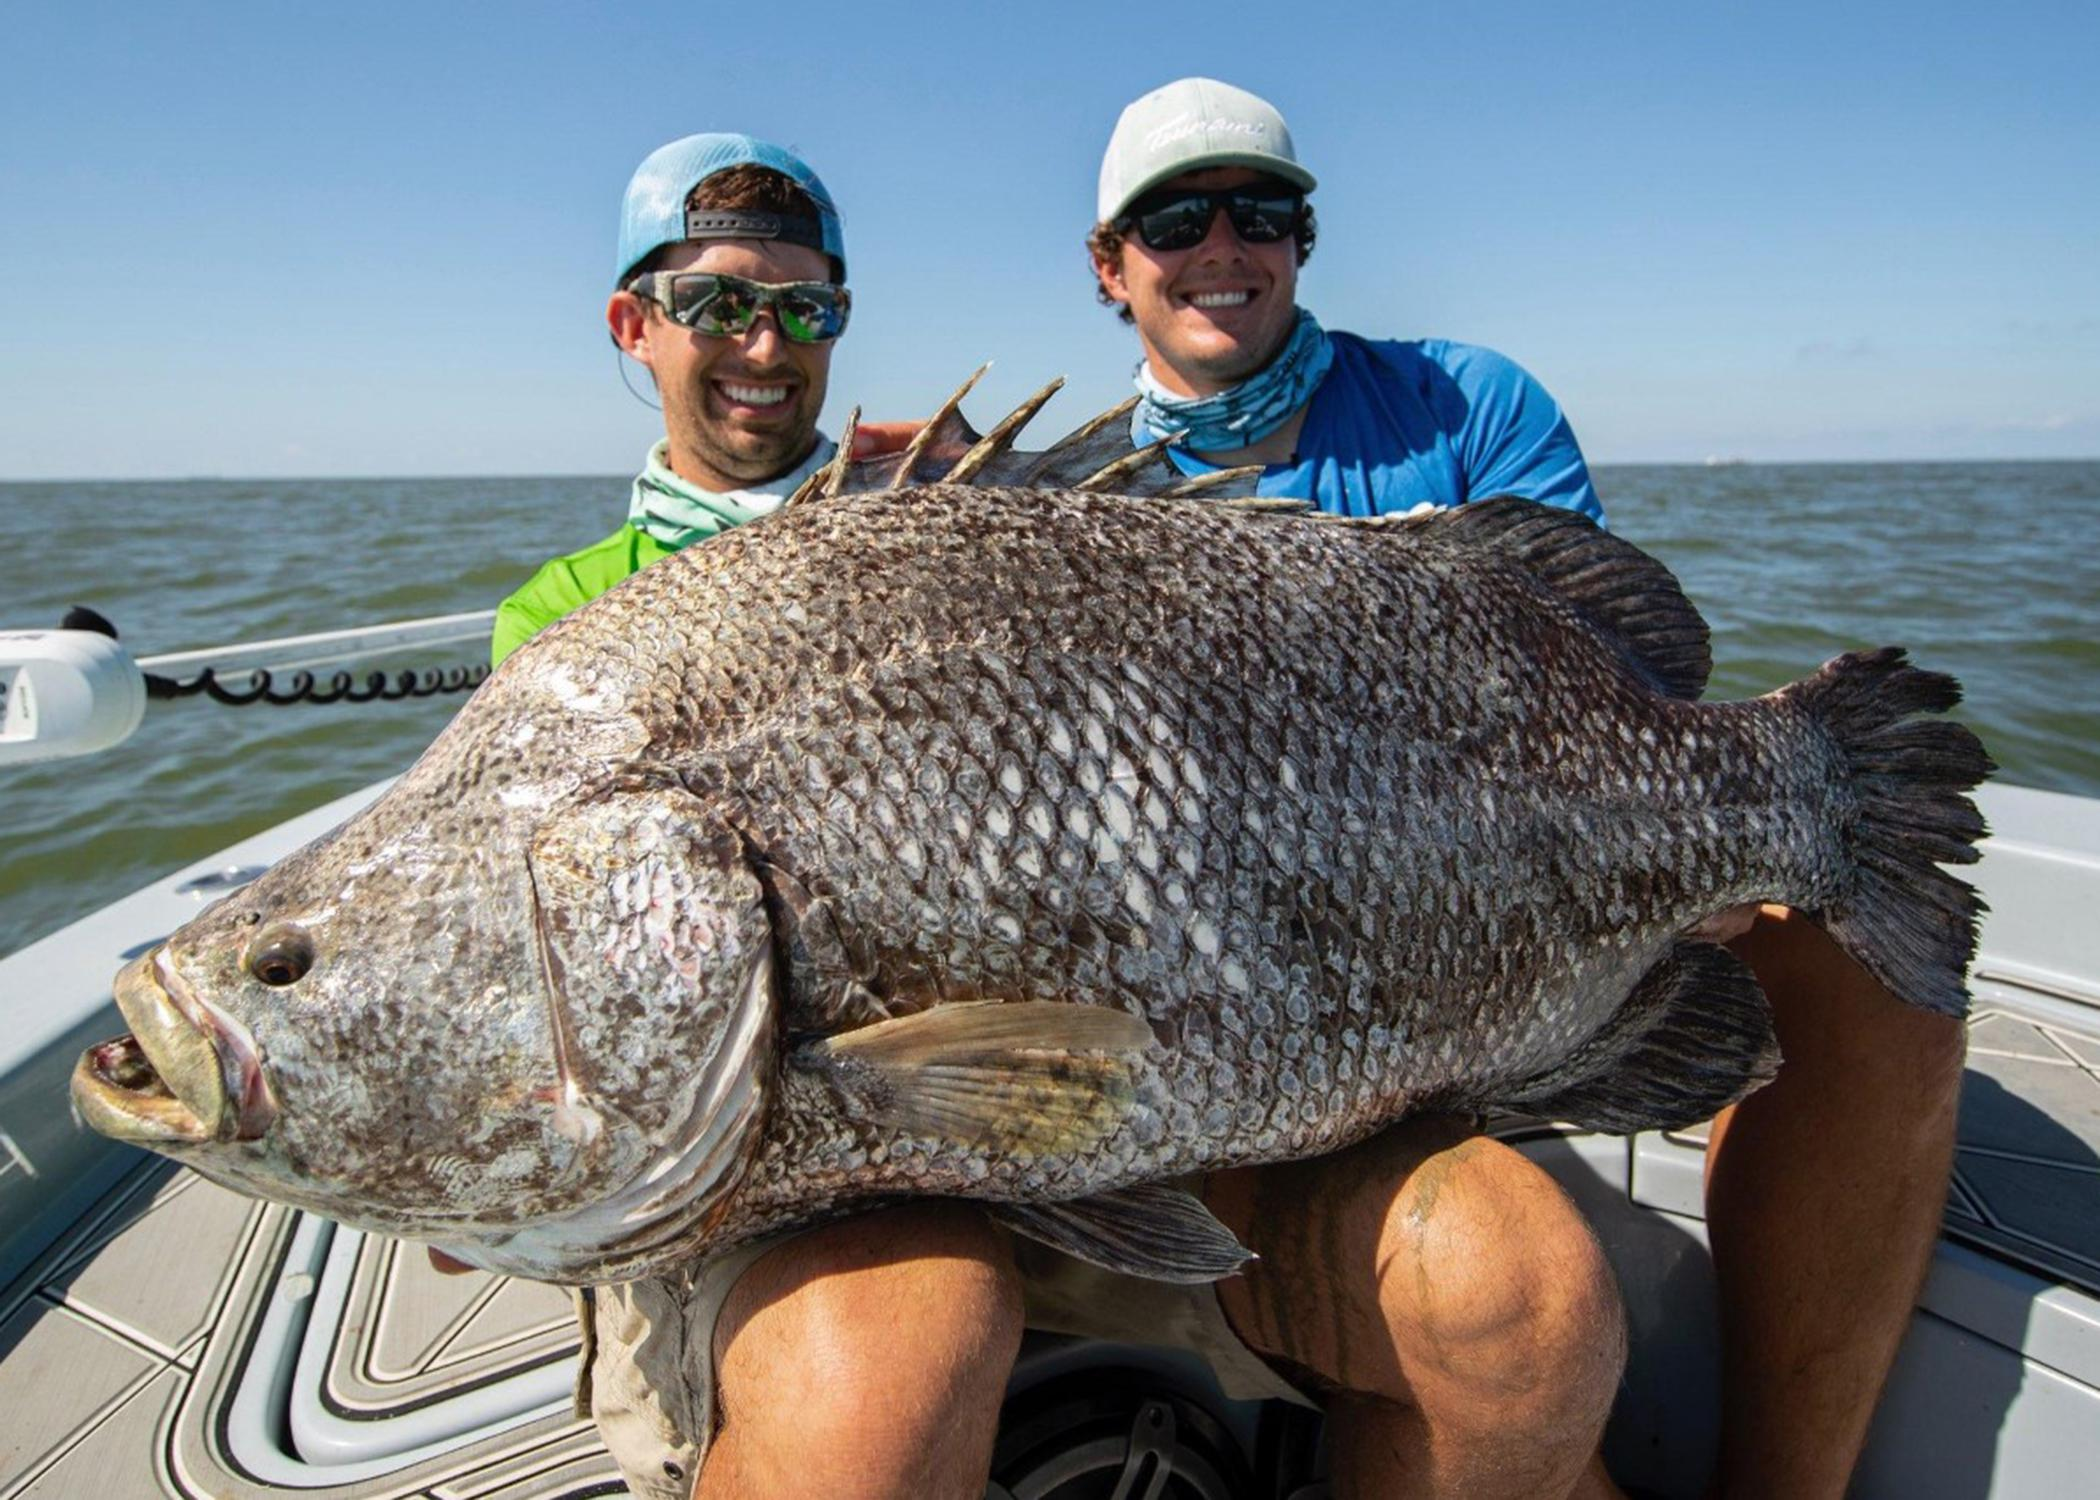 Two men in a boat pose with a large fish in their laps.